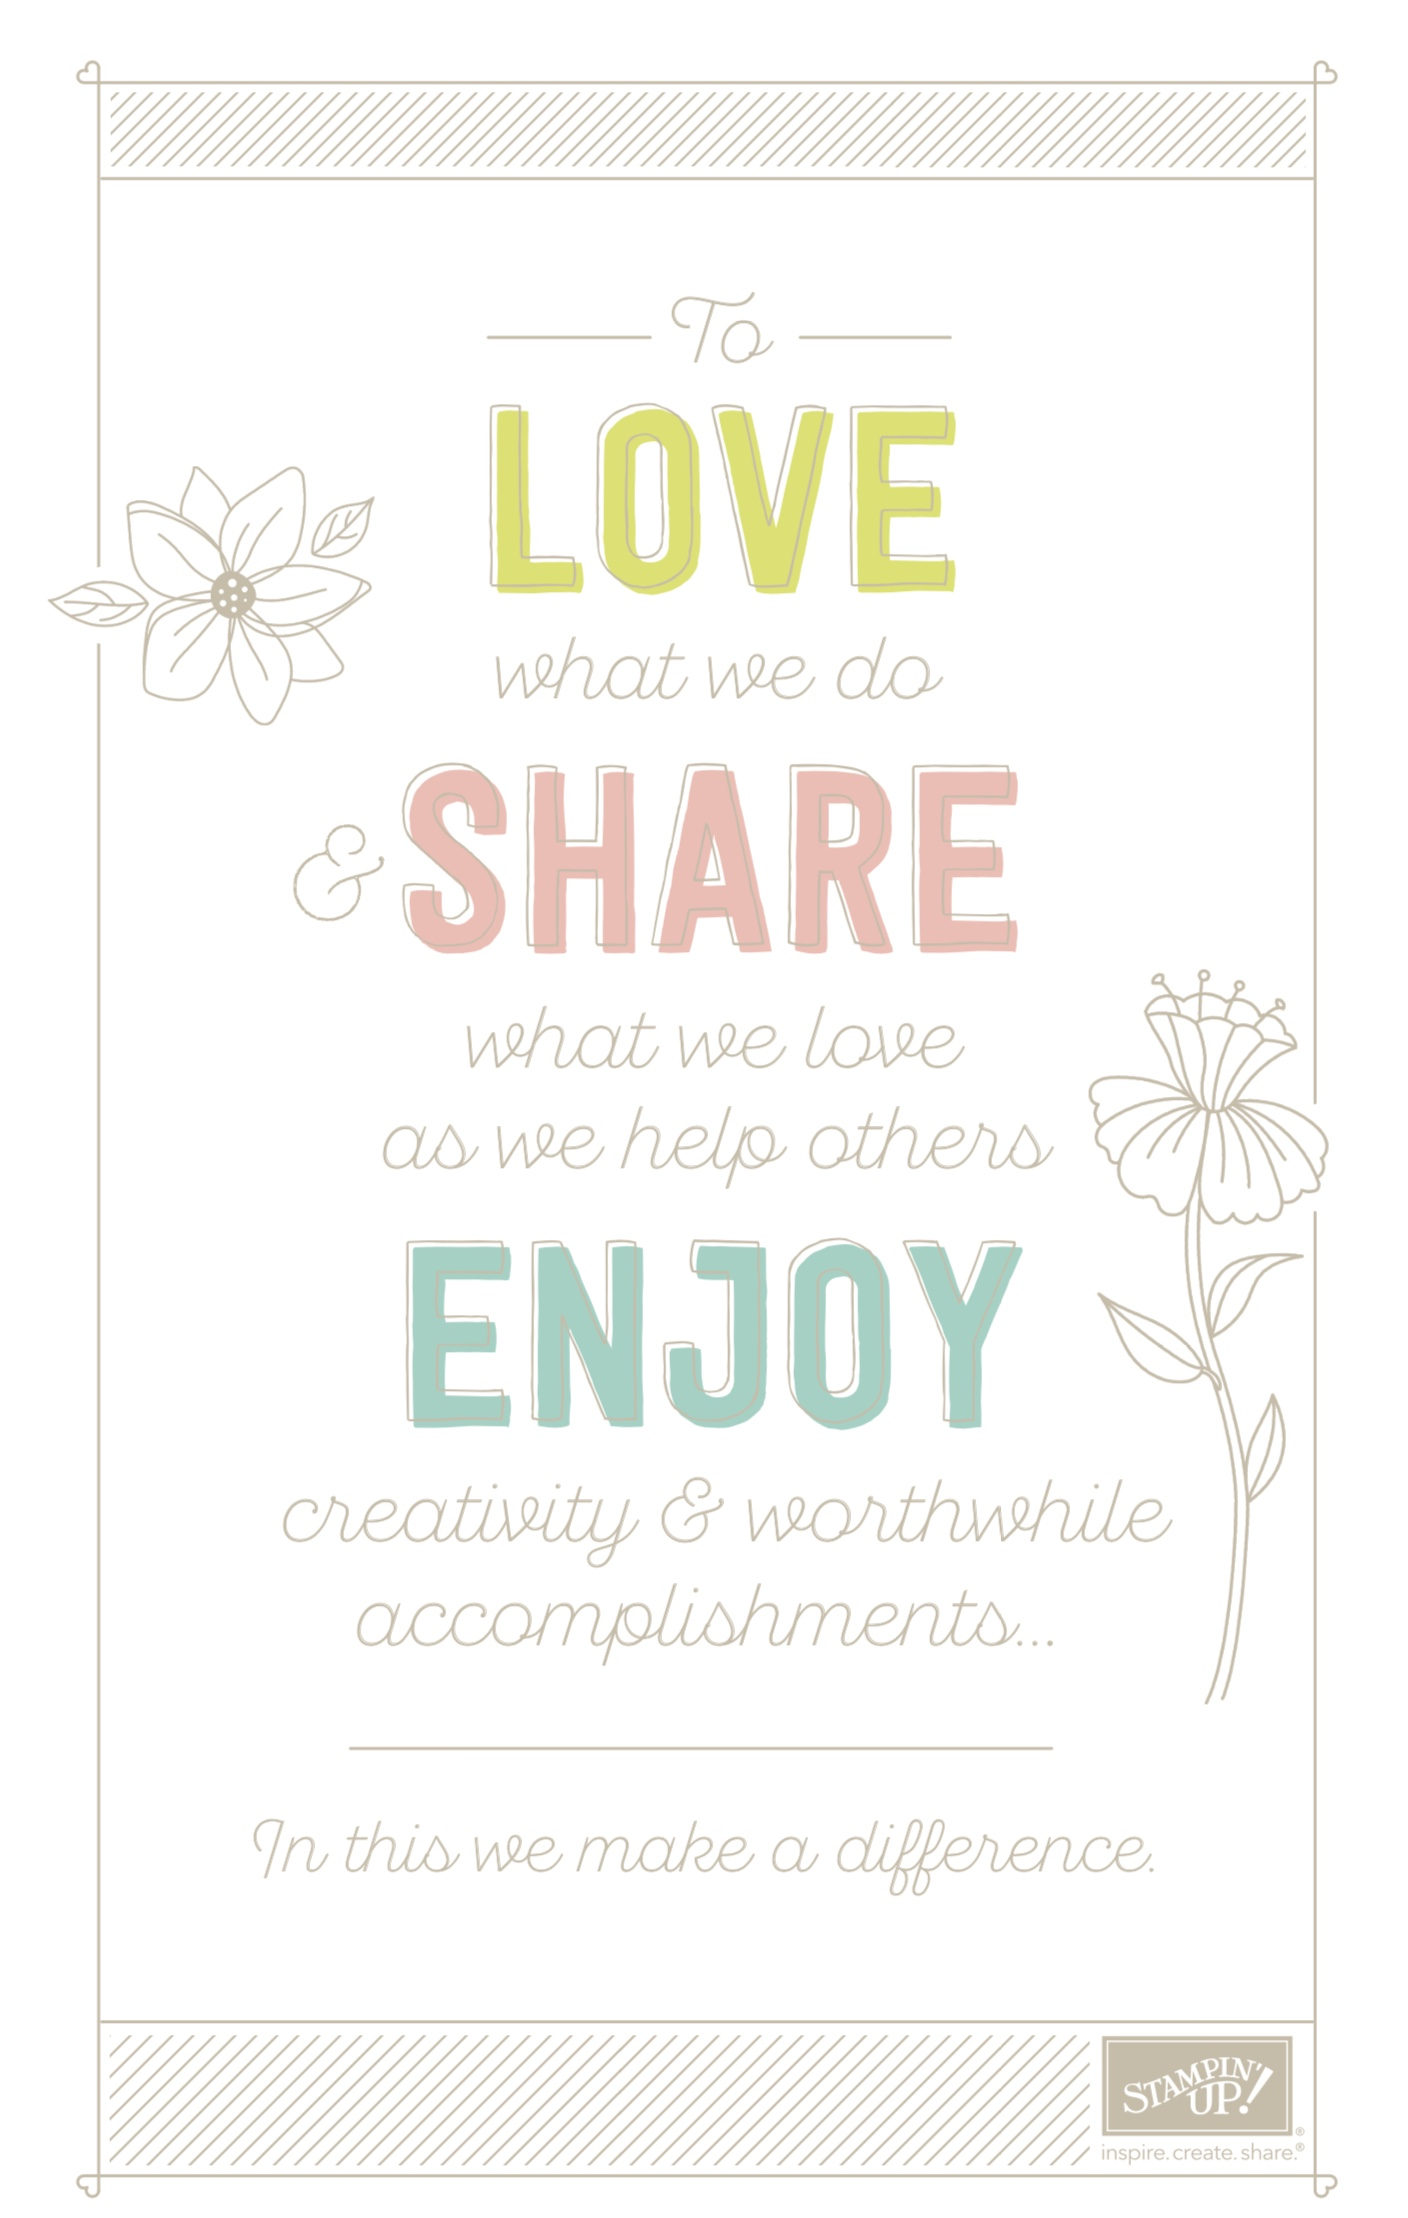 Stampin' Up!'s Statement of the Heart